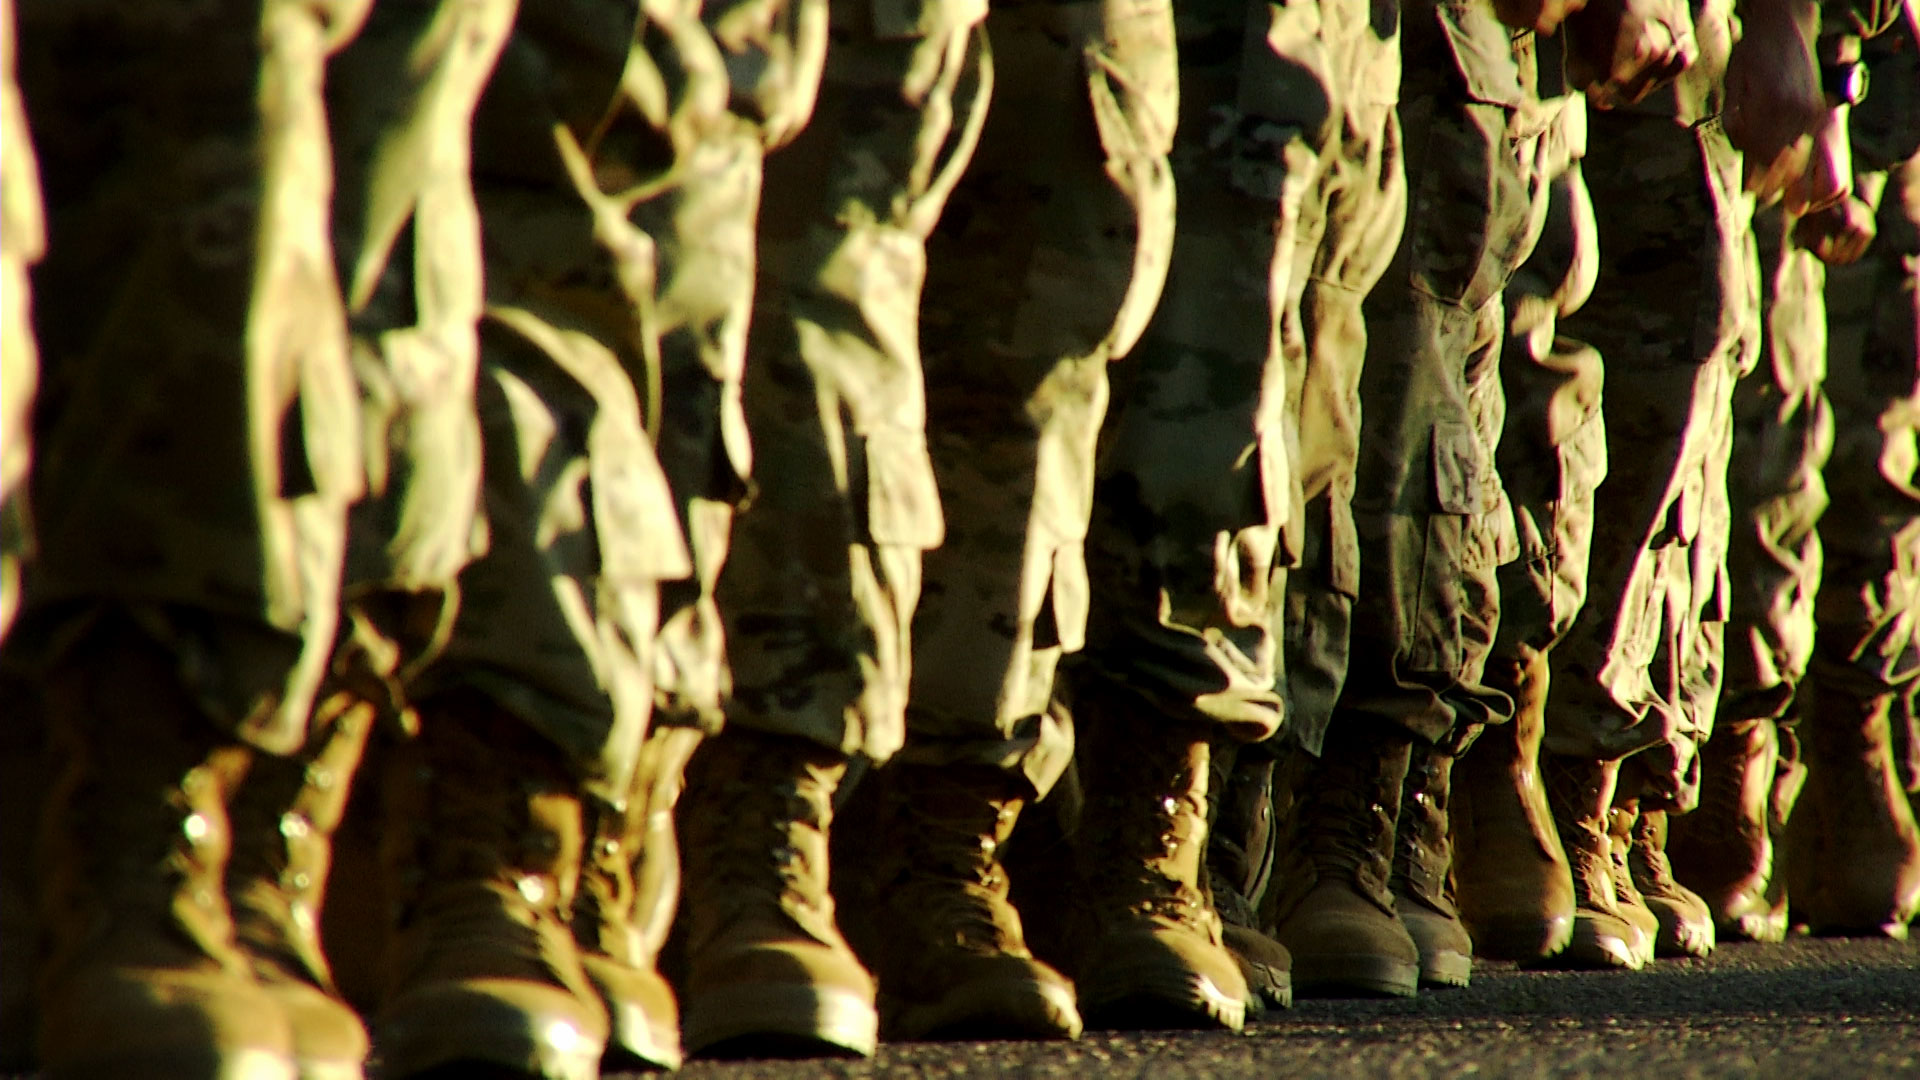 The boots of soldiers as they march in formation at Fort Huachuca in October 2019.